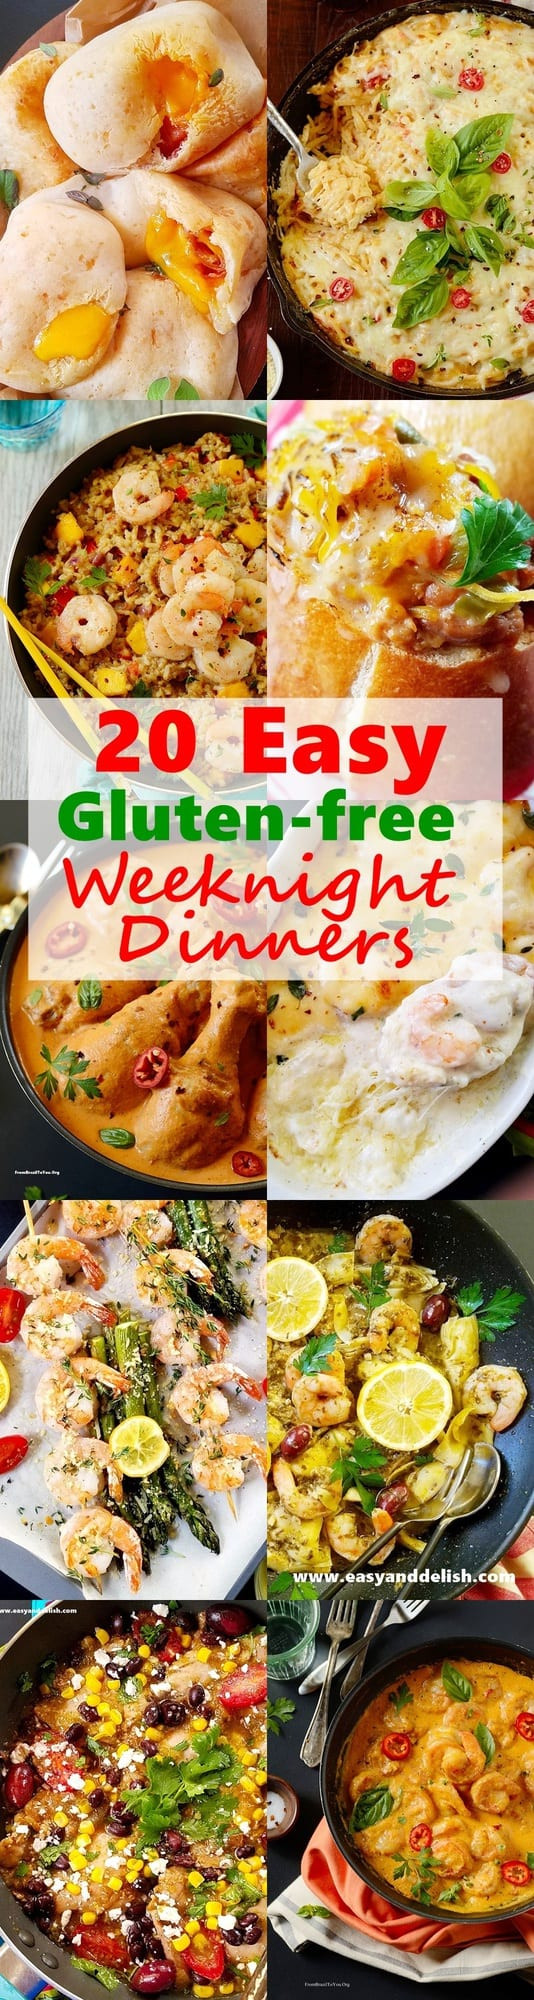 Easy Dairy Free Dinners  20 Easy Gluten Free Weeknight Dinners for the Family